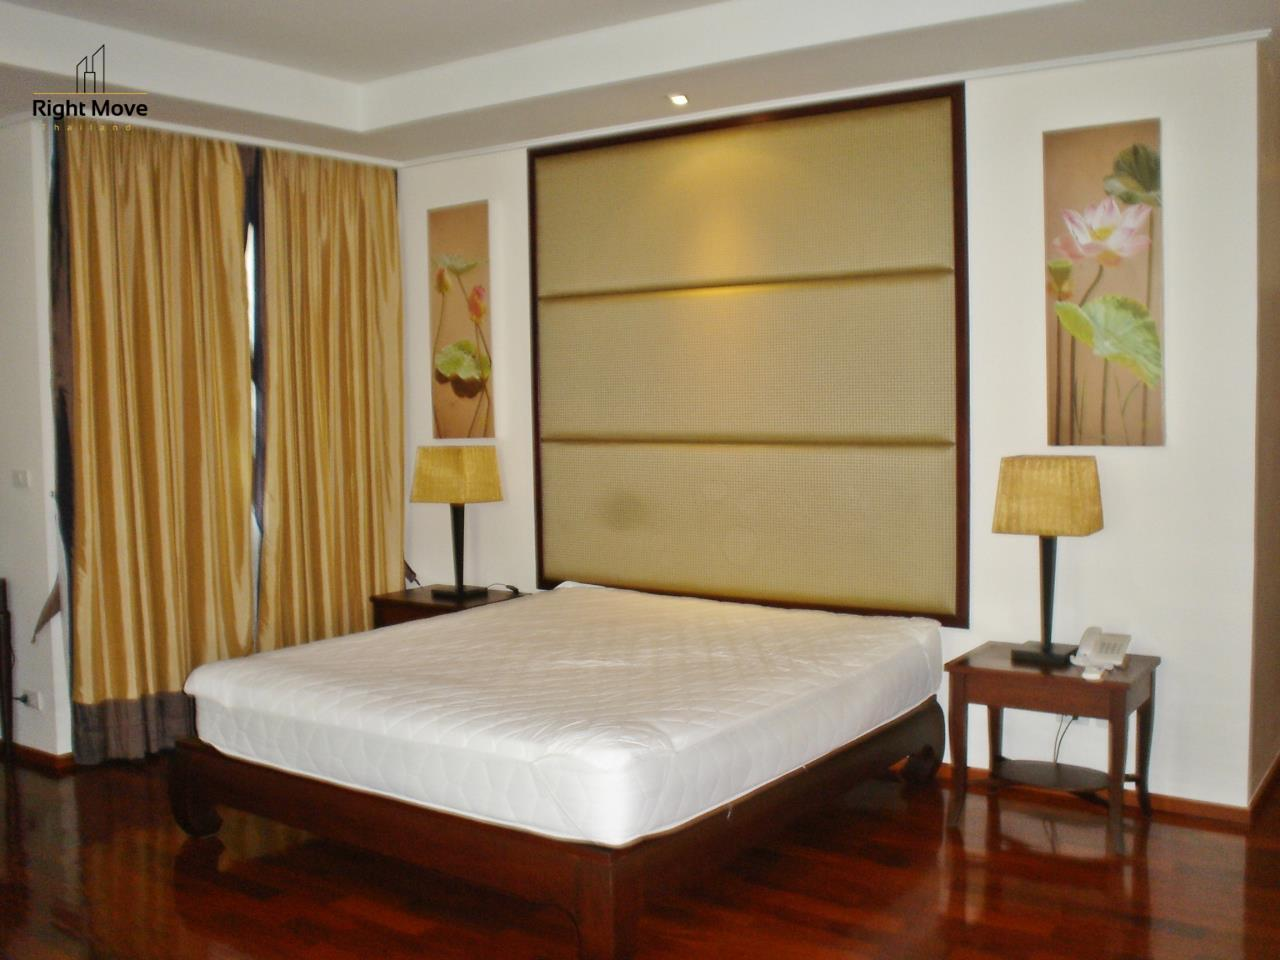 Right Move Thailand Agency's CA6349 Piyathip Place for rent - 95,000THB - 3 Bedrooms - 260 sqm. 5